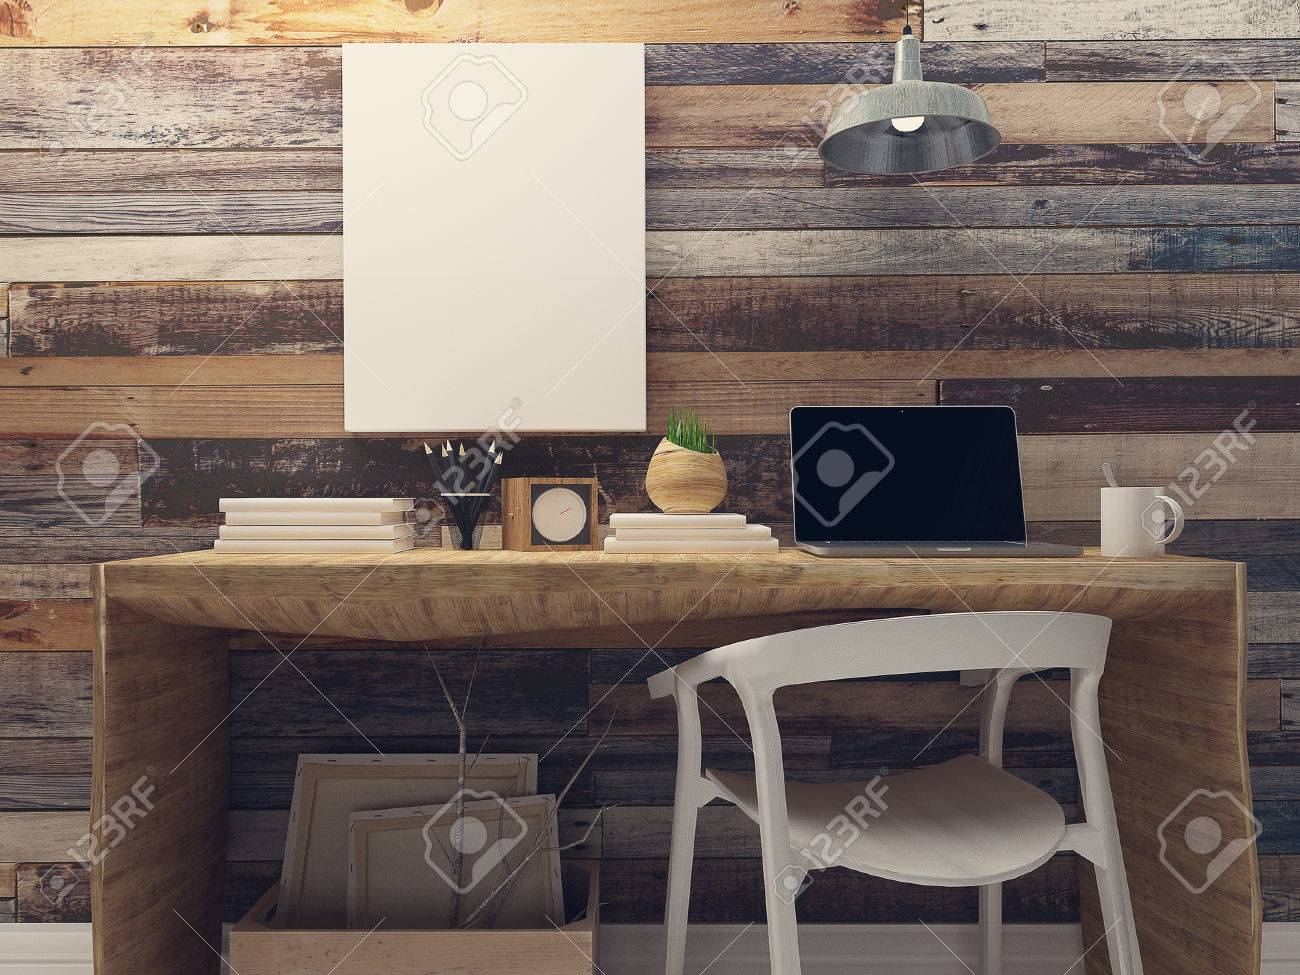 Rustic Walls Interior Blank Canvas Mockup On Rustic Wood Wall Retro Interior